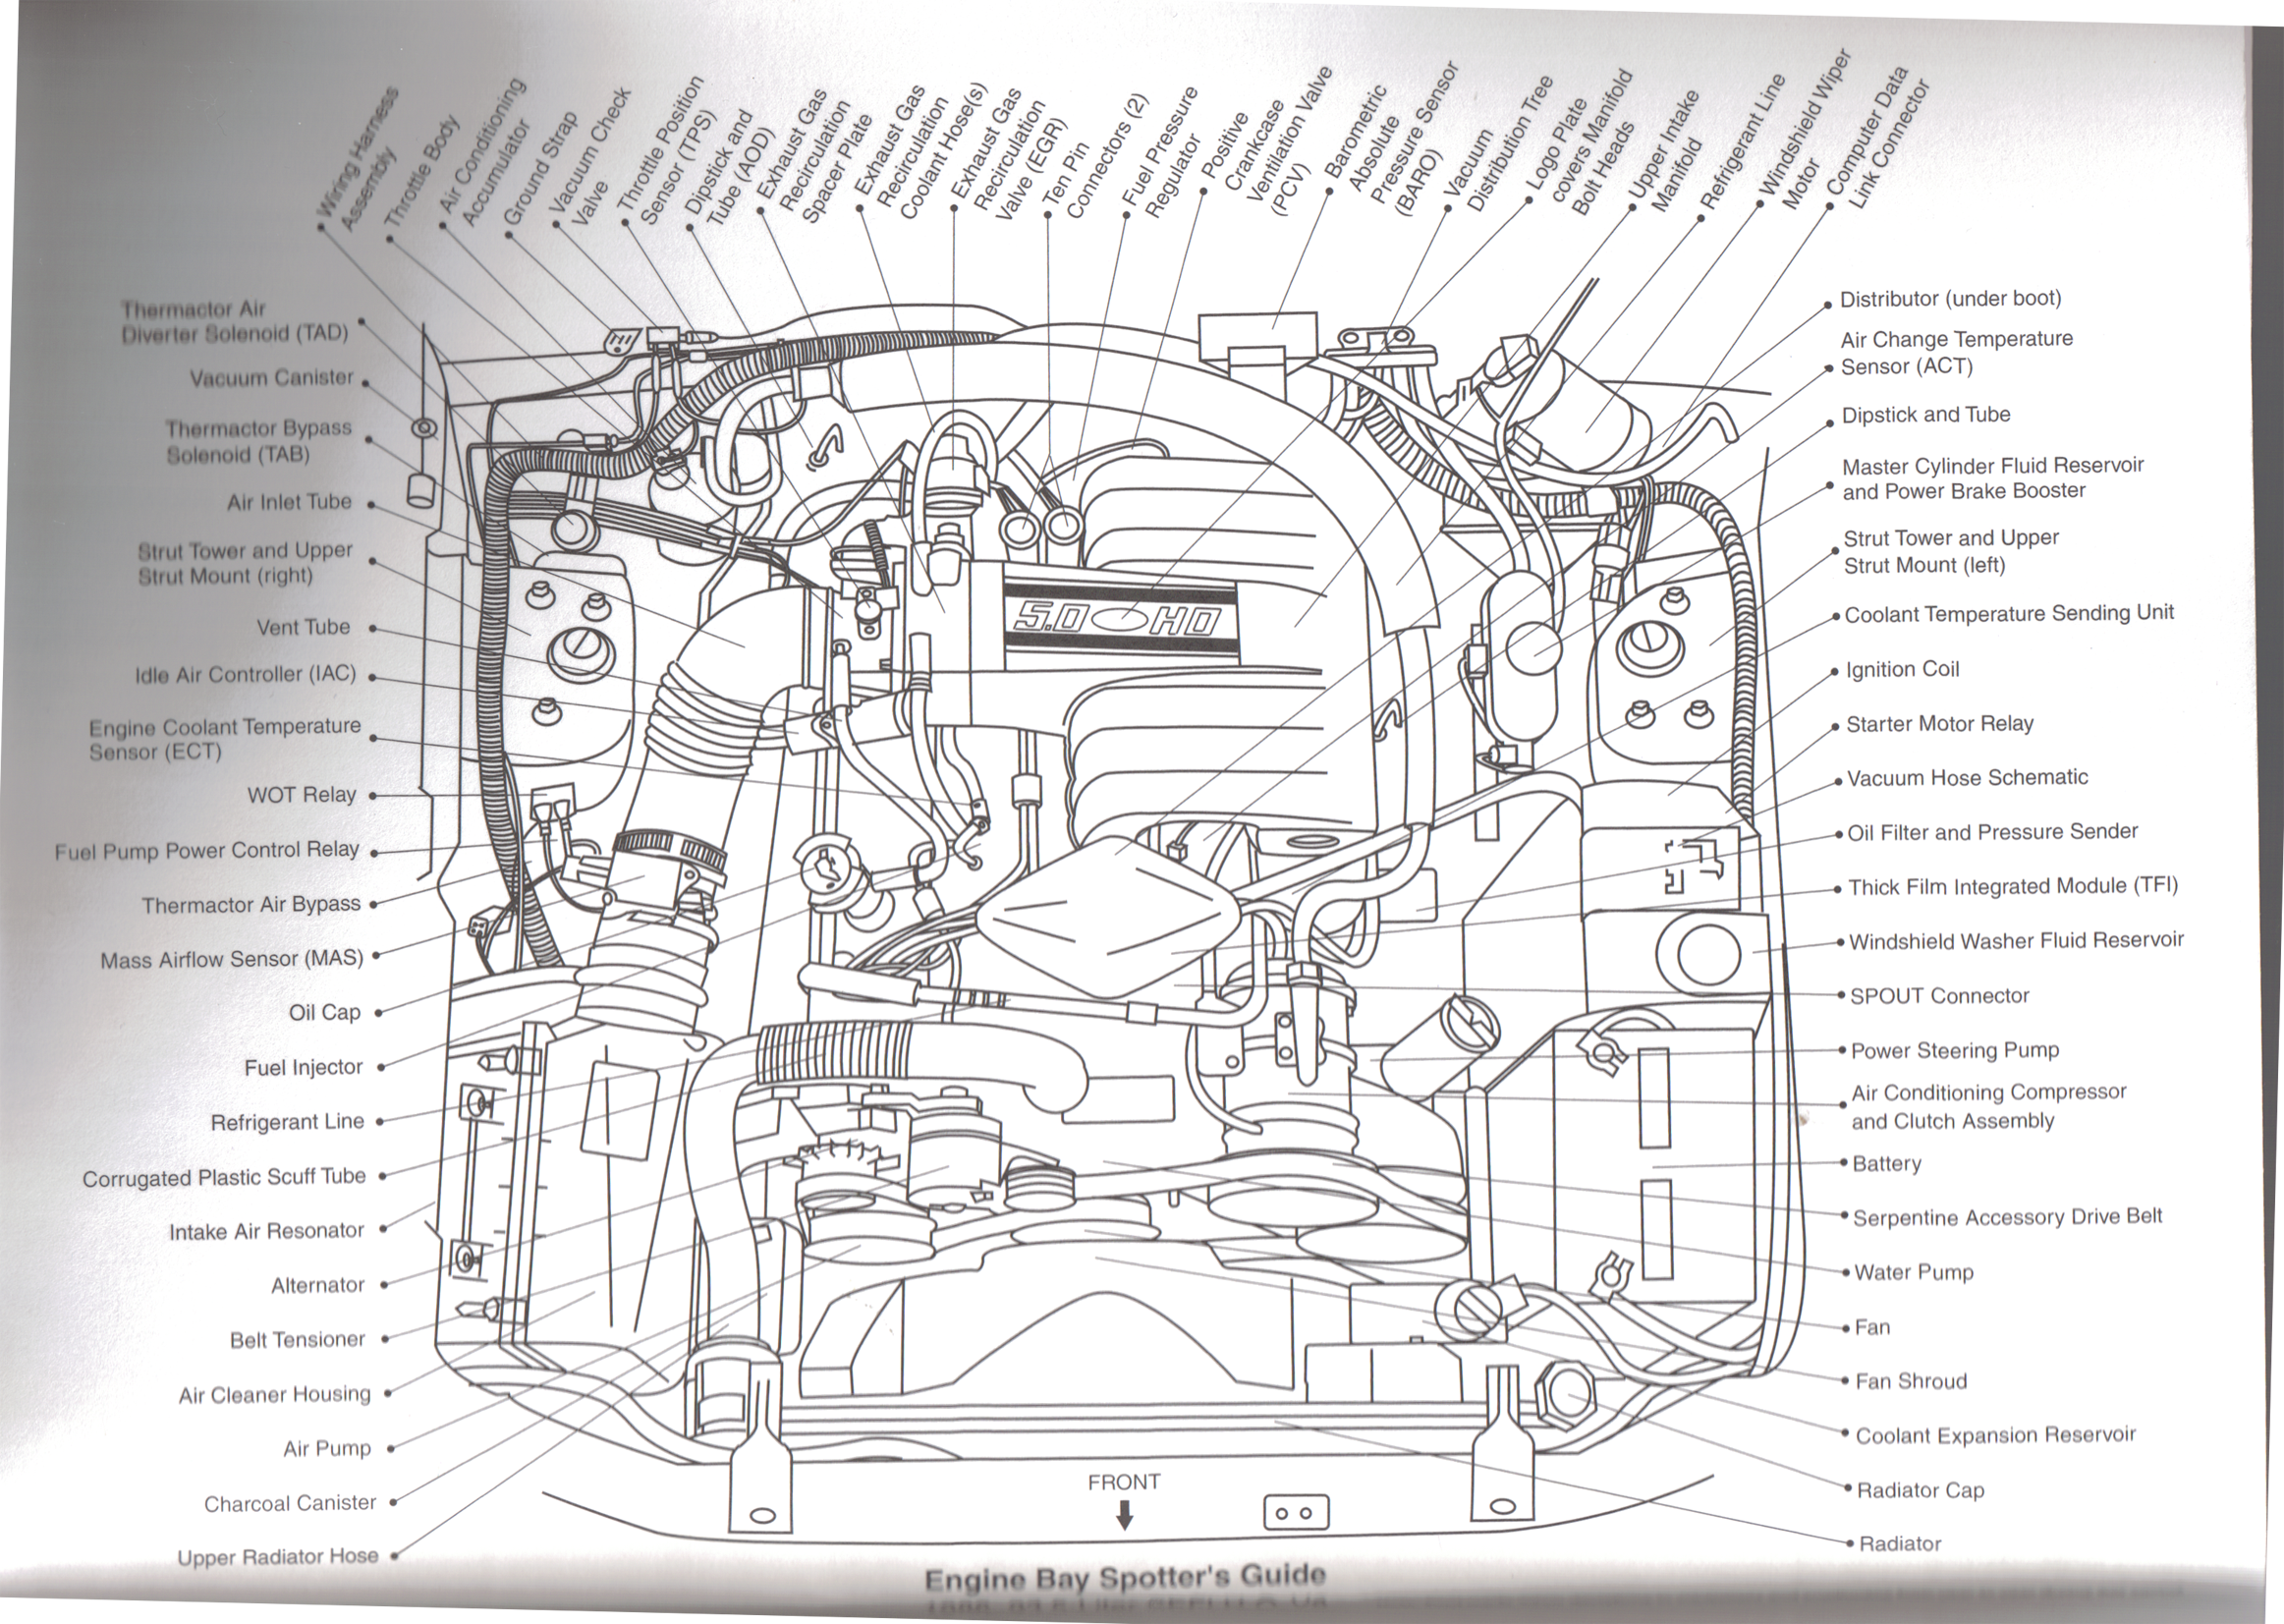 86 Svo Mustang Engine Compartment Wiring Diagram Schematics Dodge Everything You Need To Know About 1979 1993 Foxbody Mustangs Rh Americanmuscle Com 87 1986 Radio